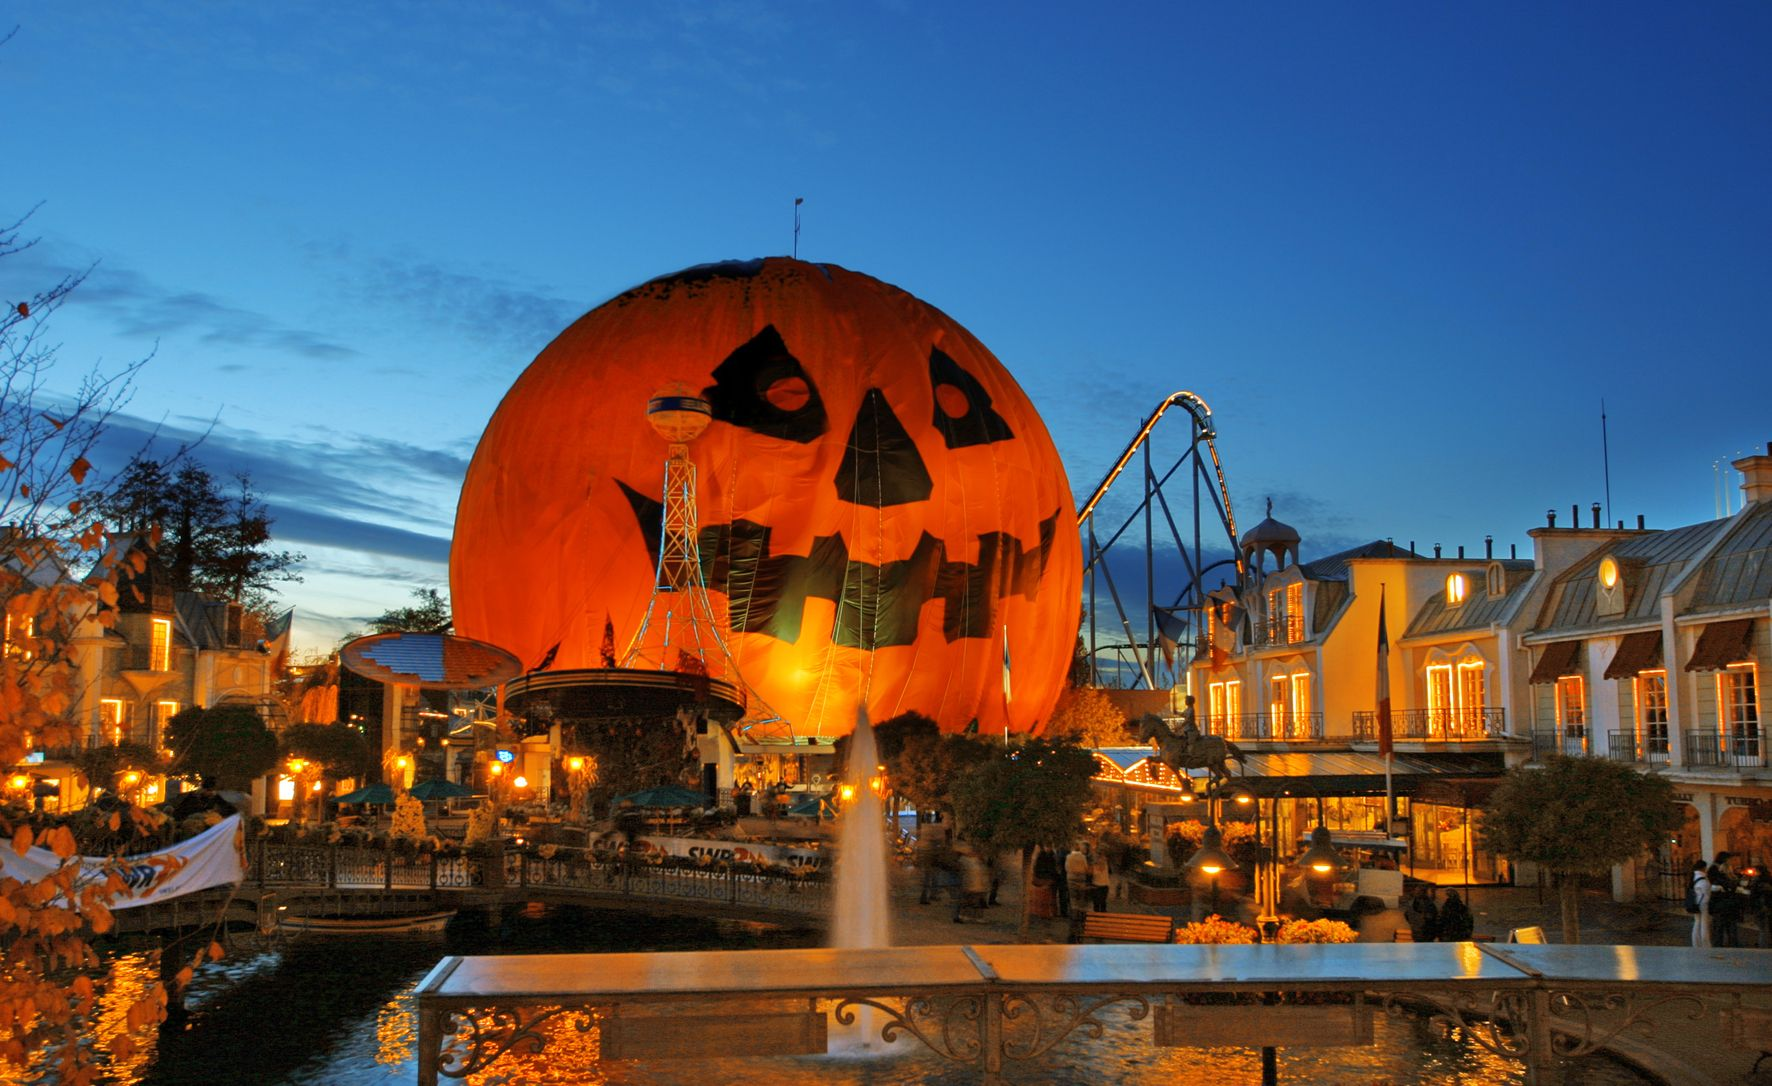 Http Www Free Hdwallpapers Com Wallpapers Architecture 37687 Jpg Horror Nights Theme Park Park Art